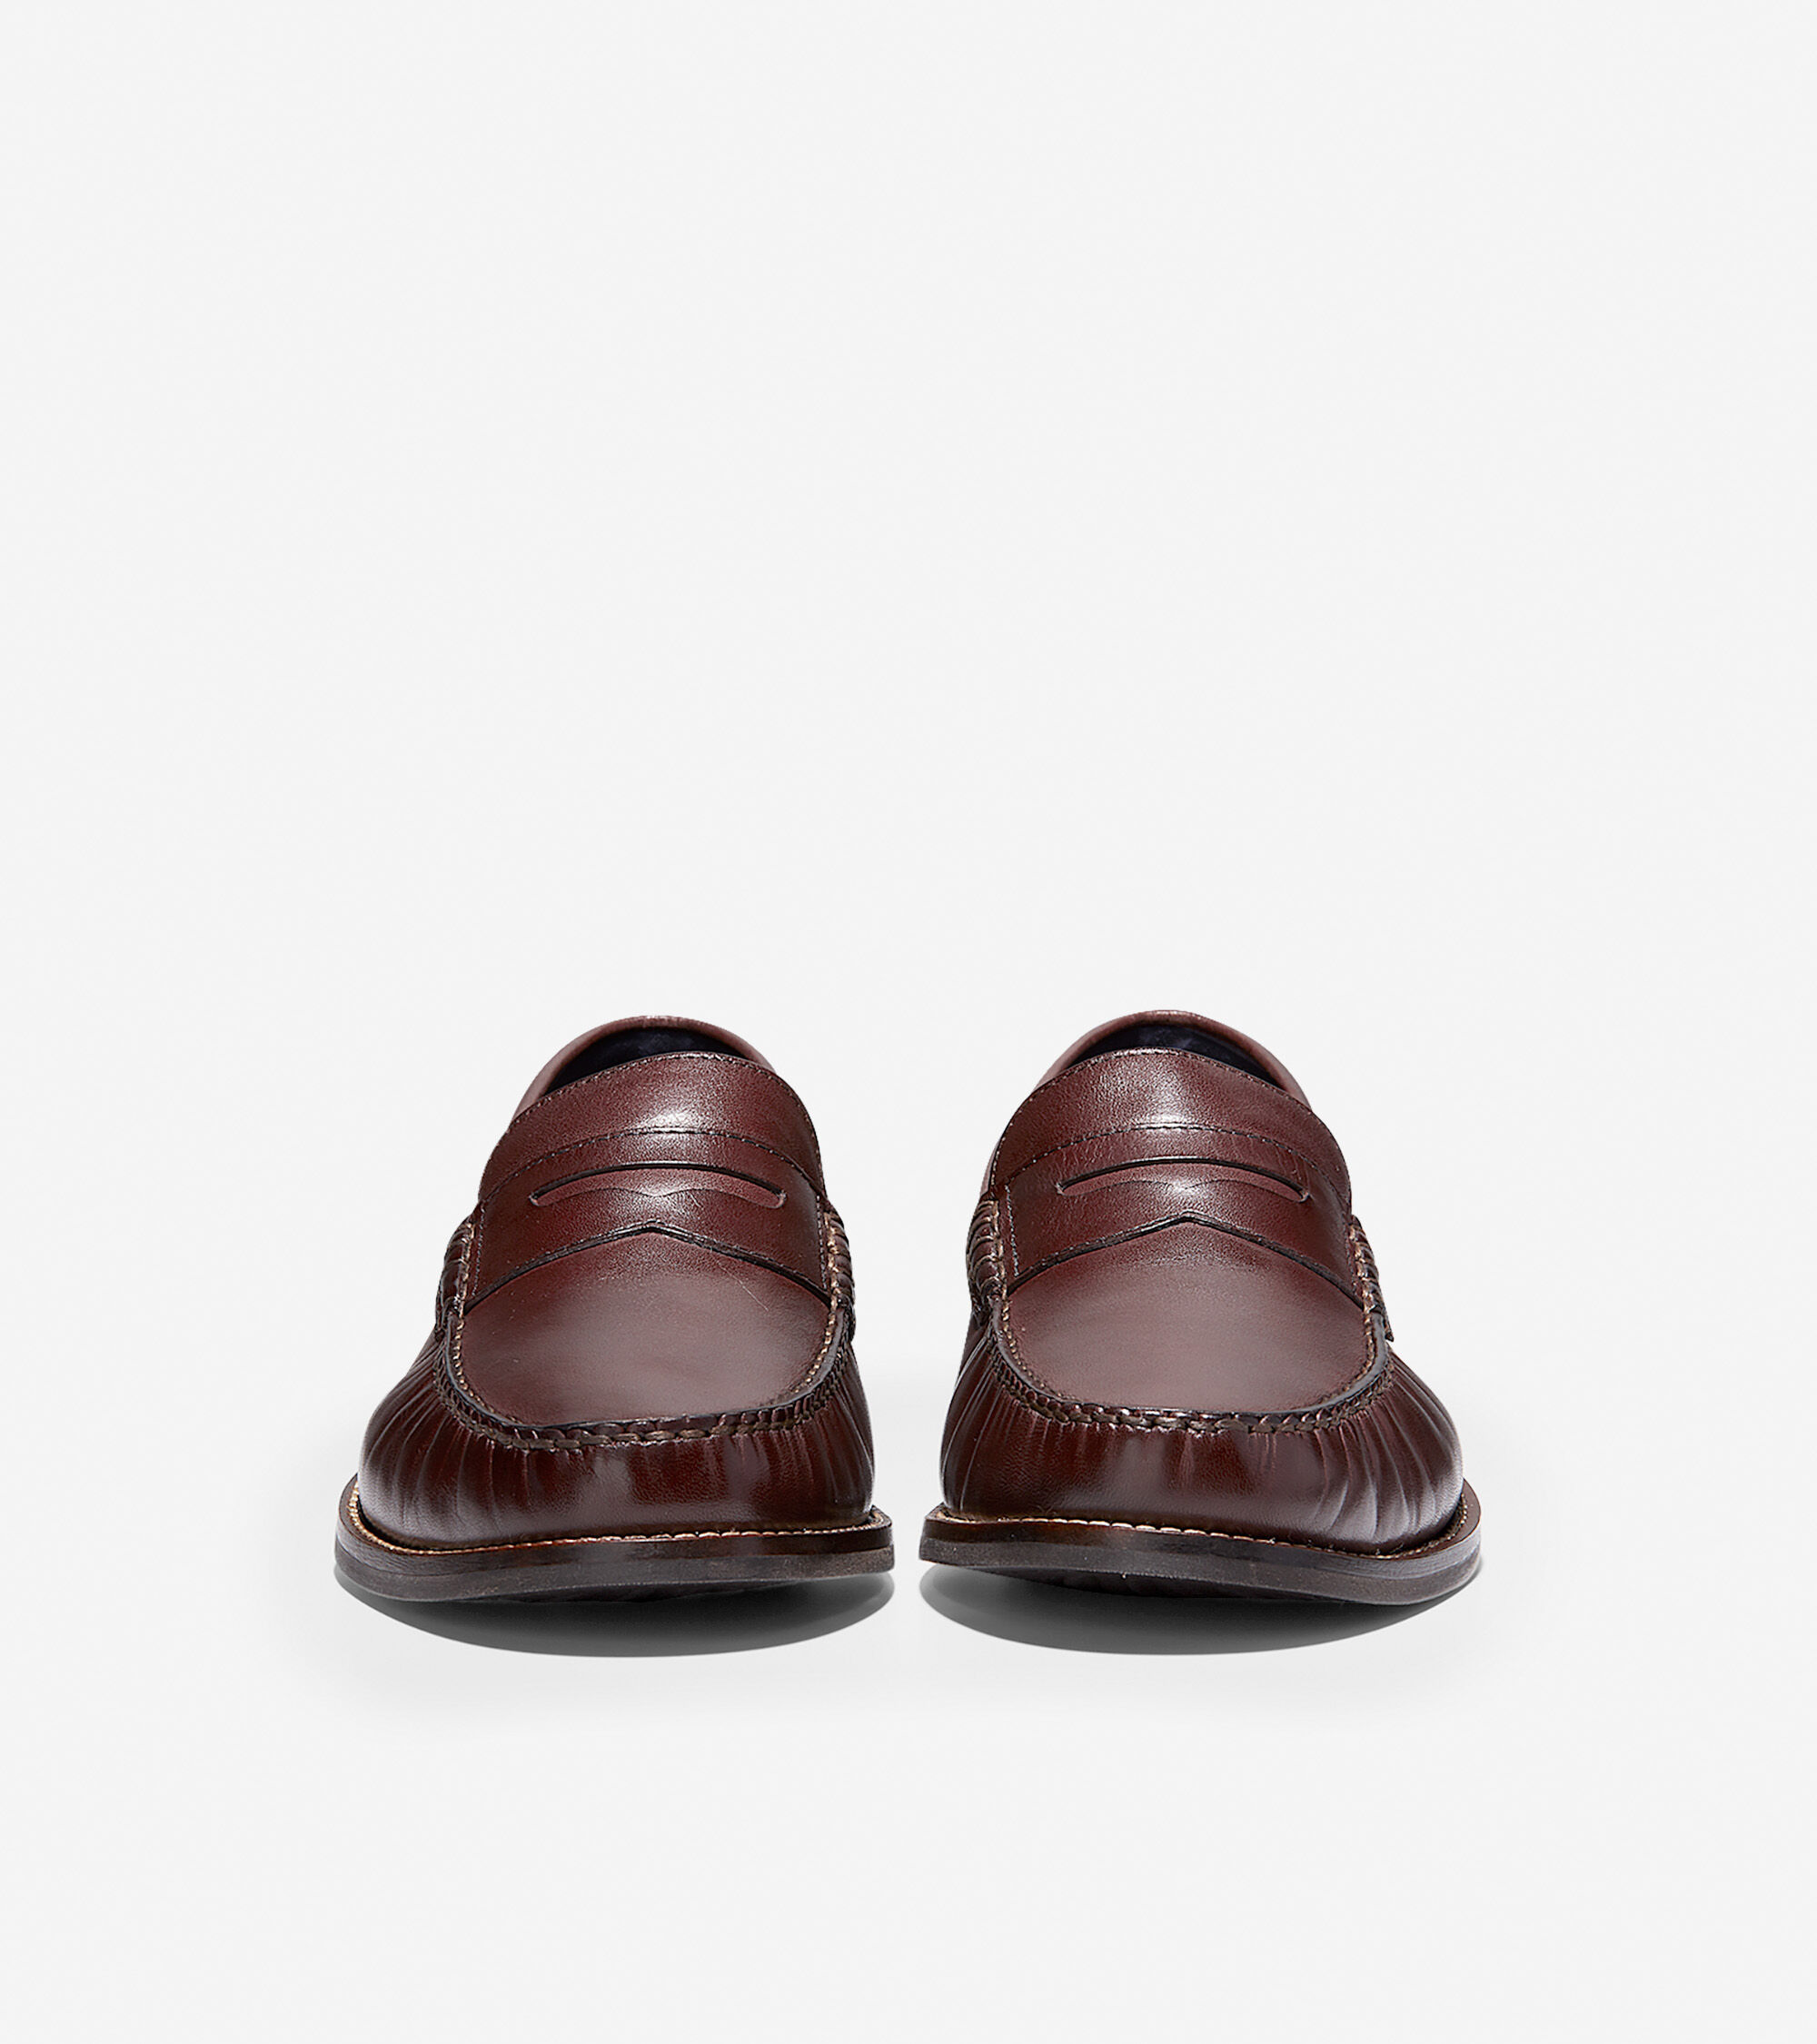 d238f0c3385 Men s Pinch Grand Classic Penny Loafers in Mahogany